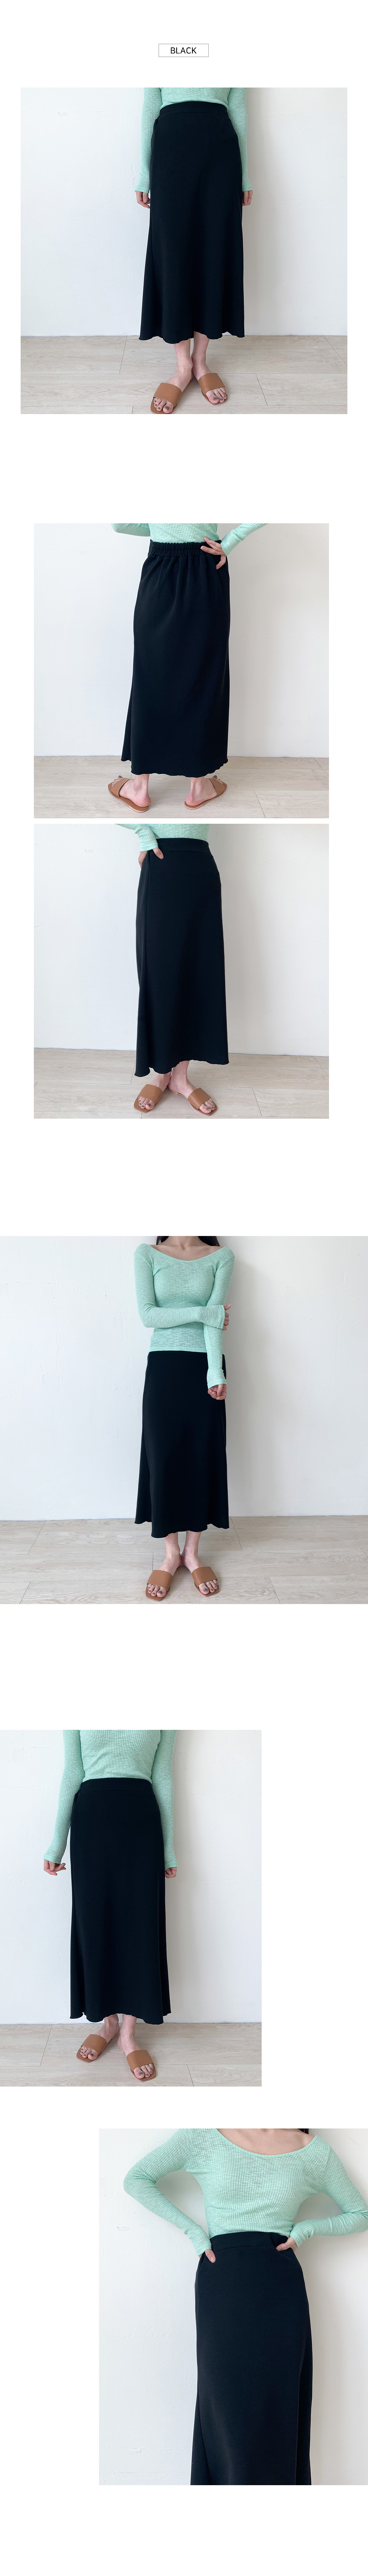 Youth Skirt